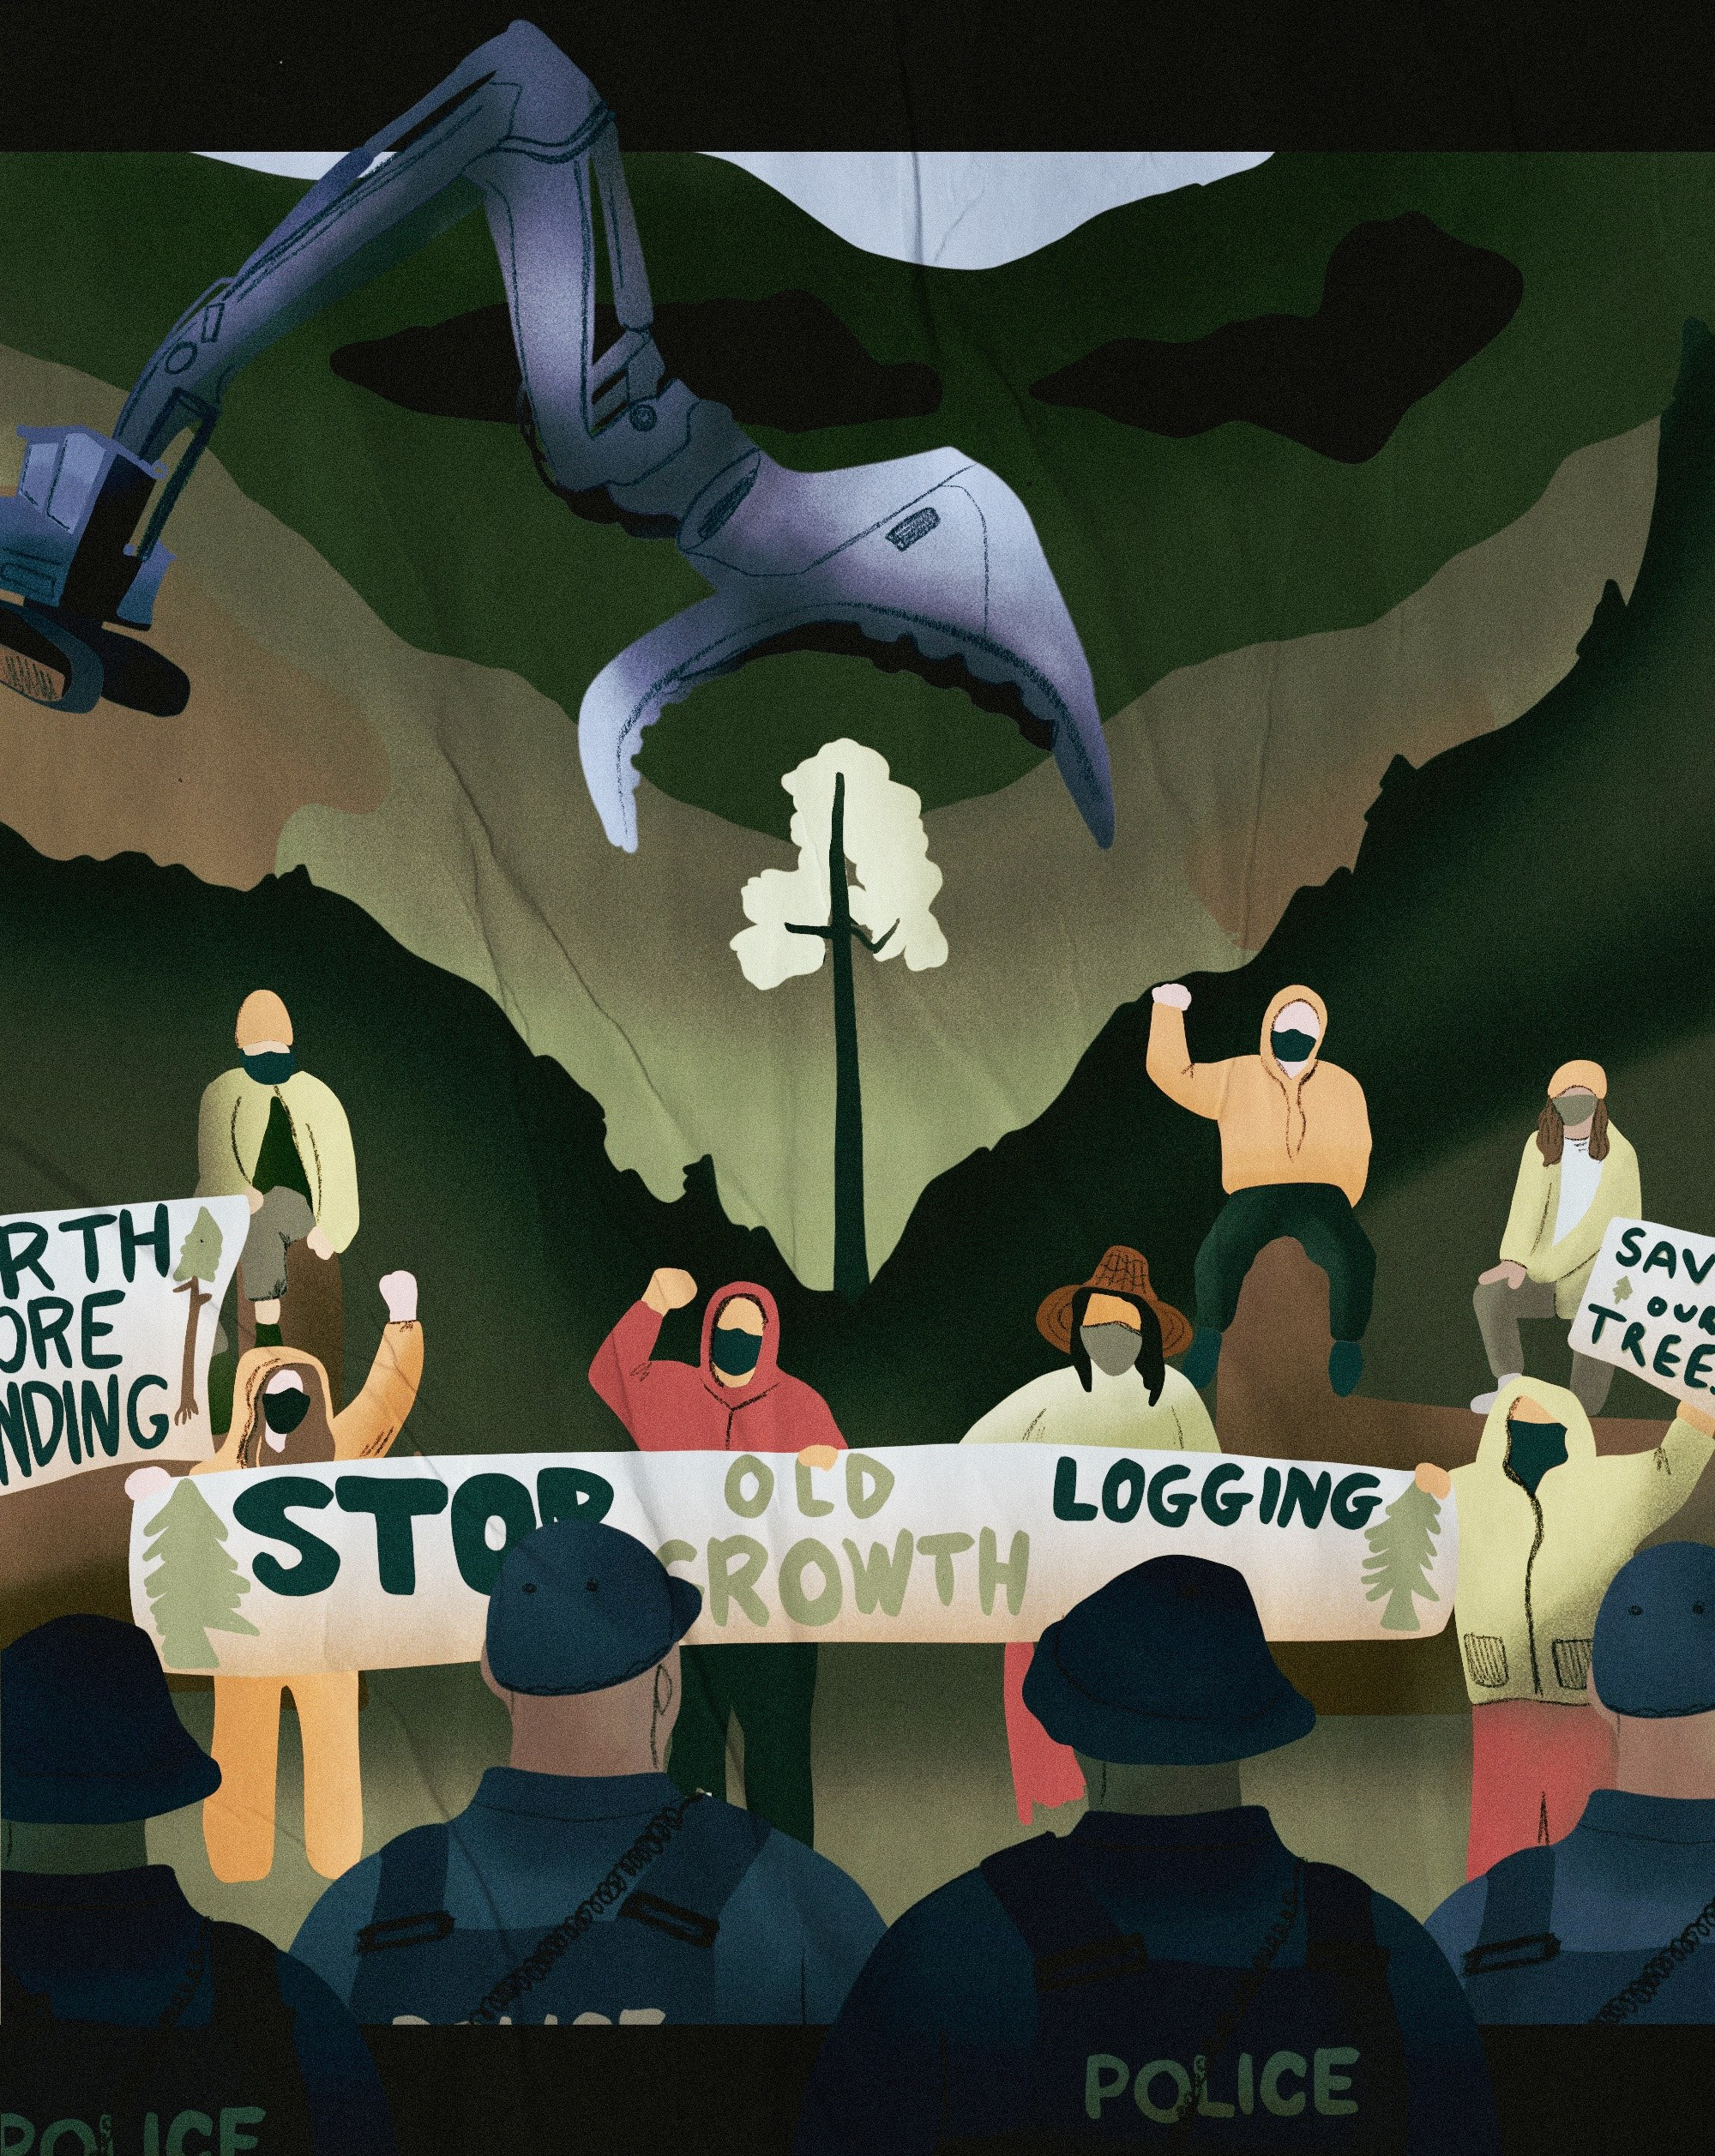 An illustration by Claire Stewart depicting old-growth logging protesters at Fairy Creek Blockade.